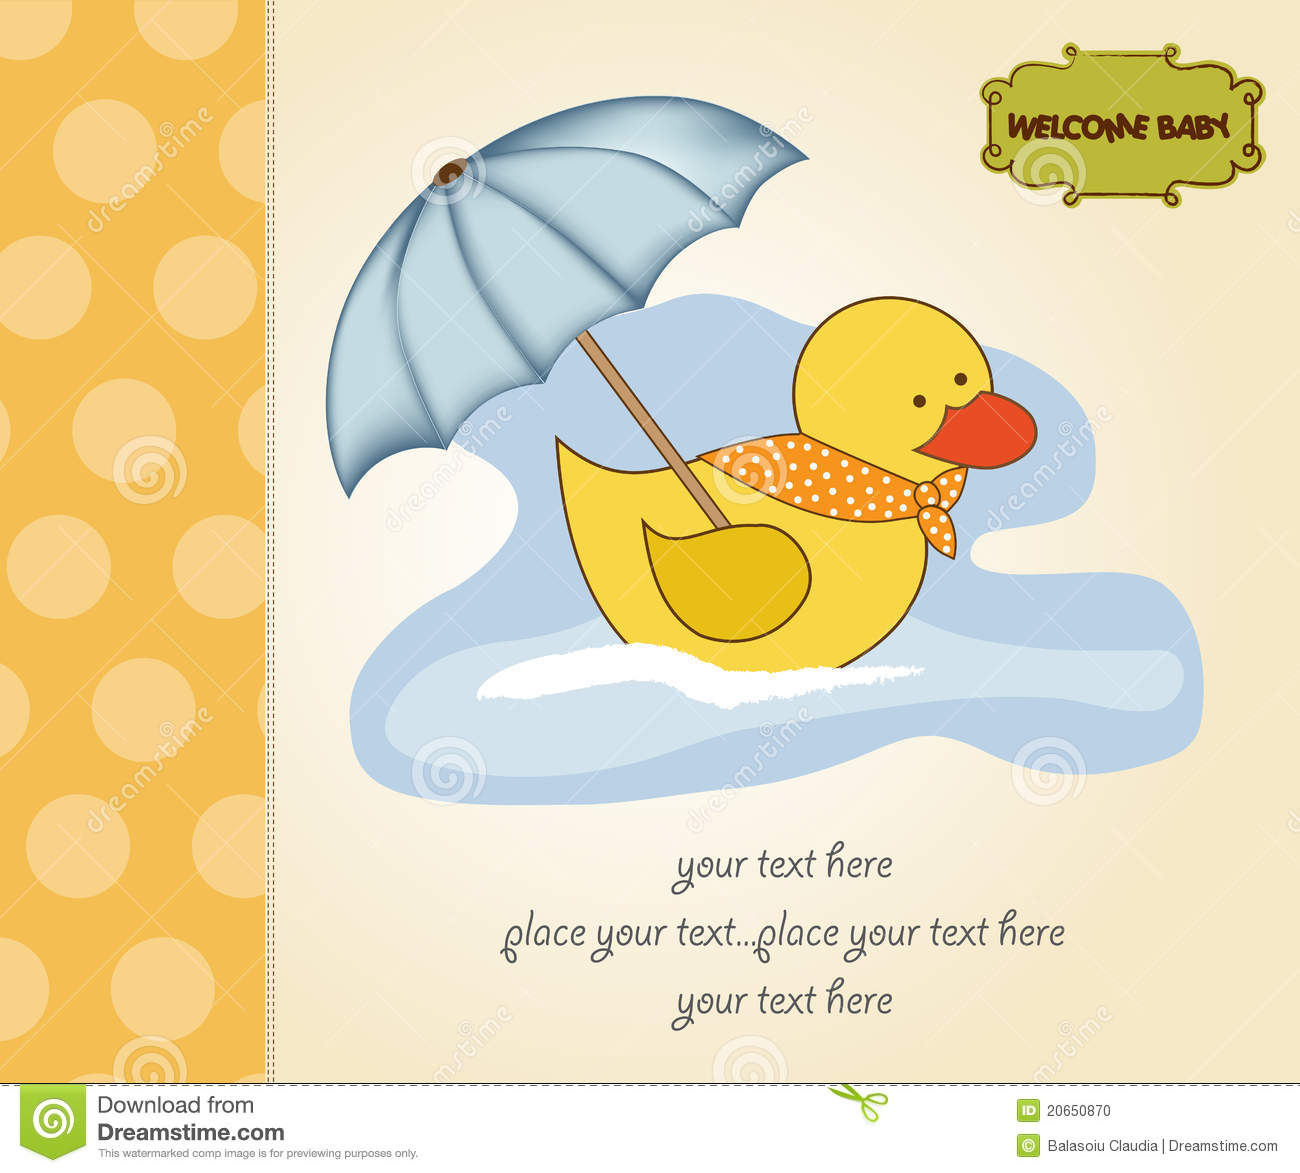 Baby Shower Card Stock Photo - Image: 20650870